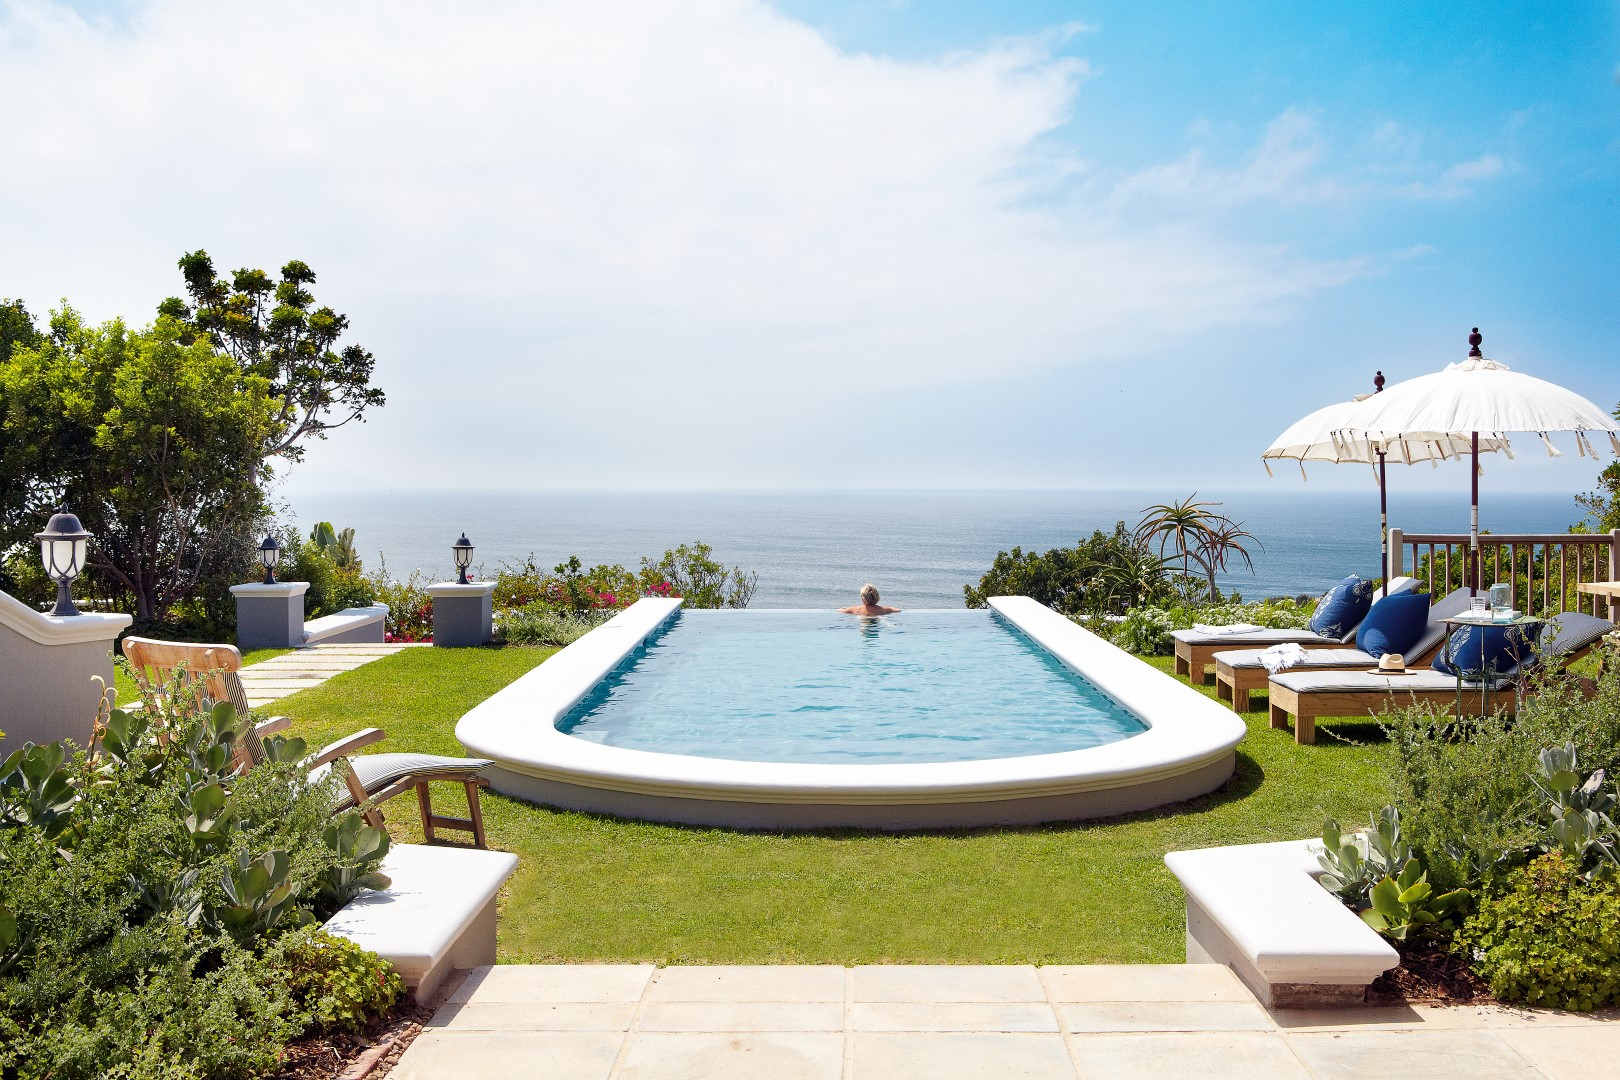 Luxury accommodation Plettenberg Bay, Stunning sea views from the Infinity pool at Lookout House